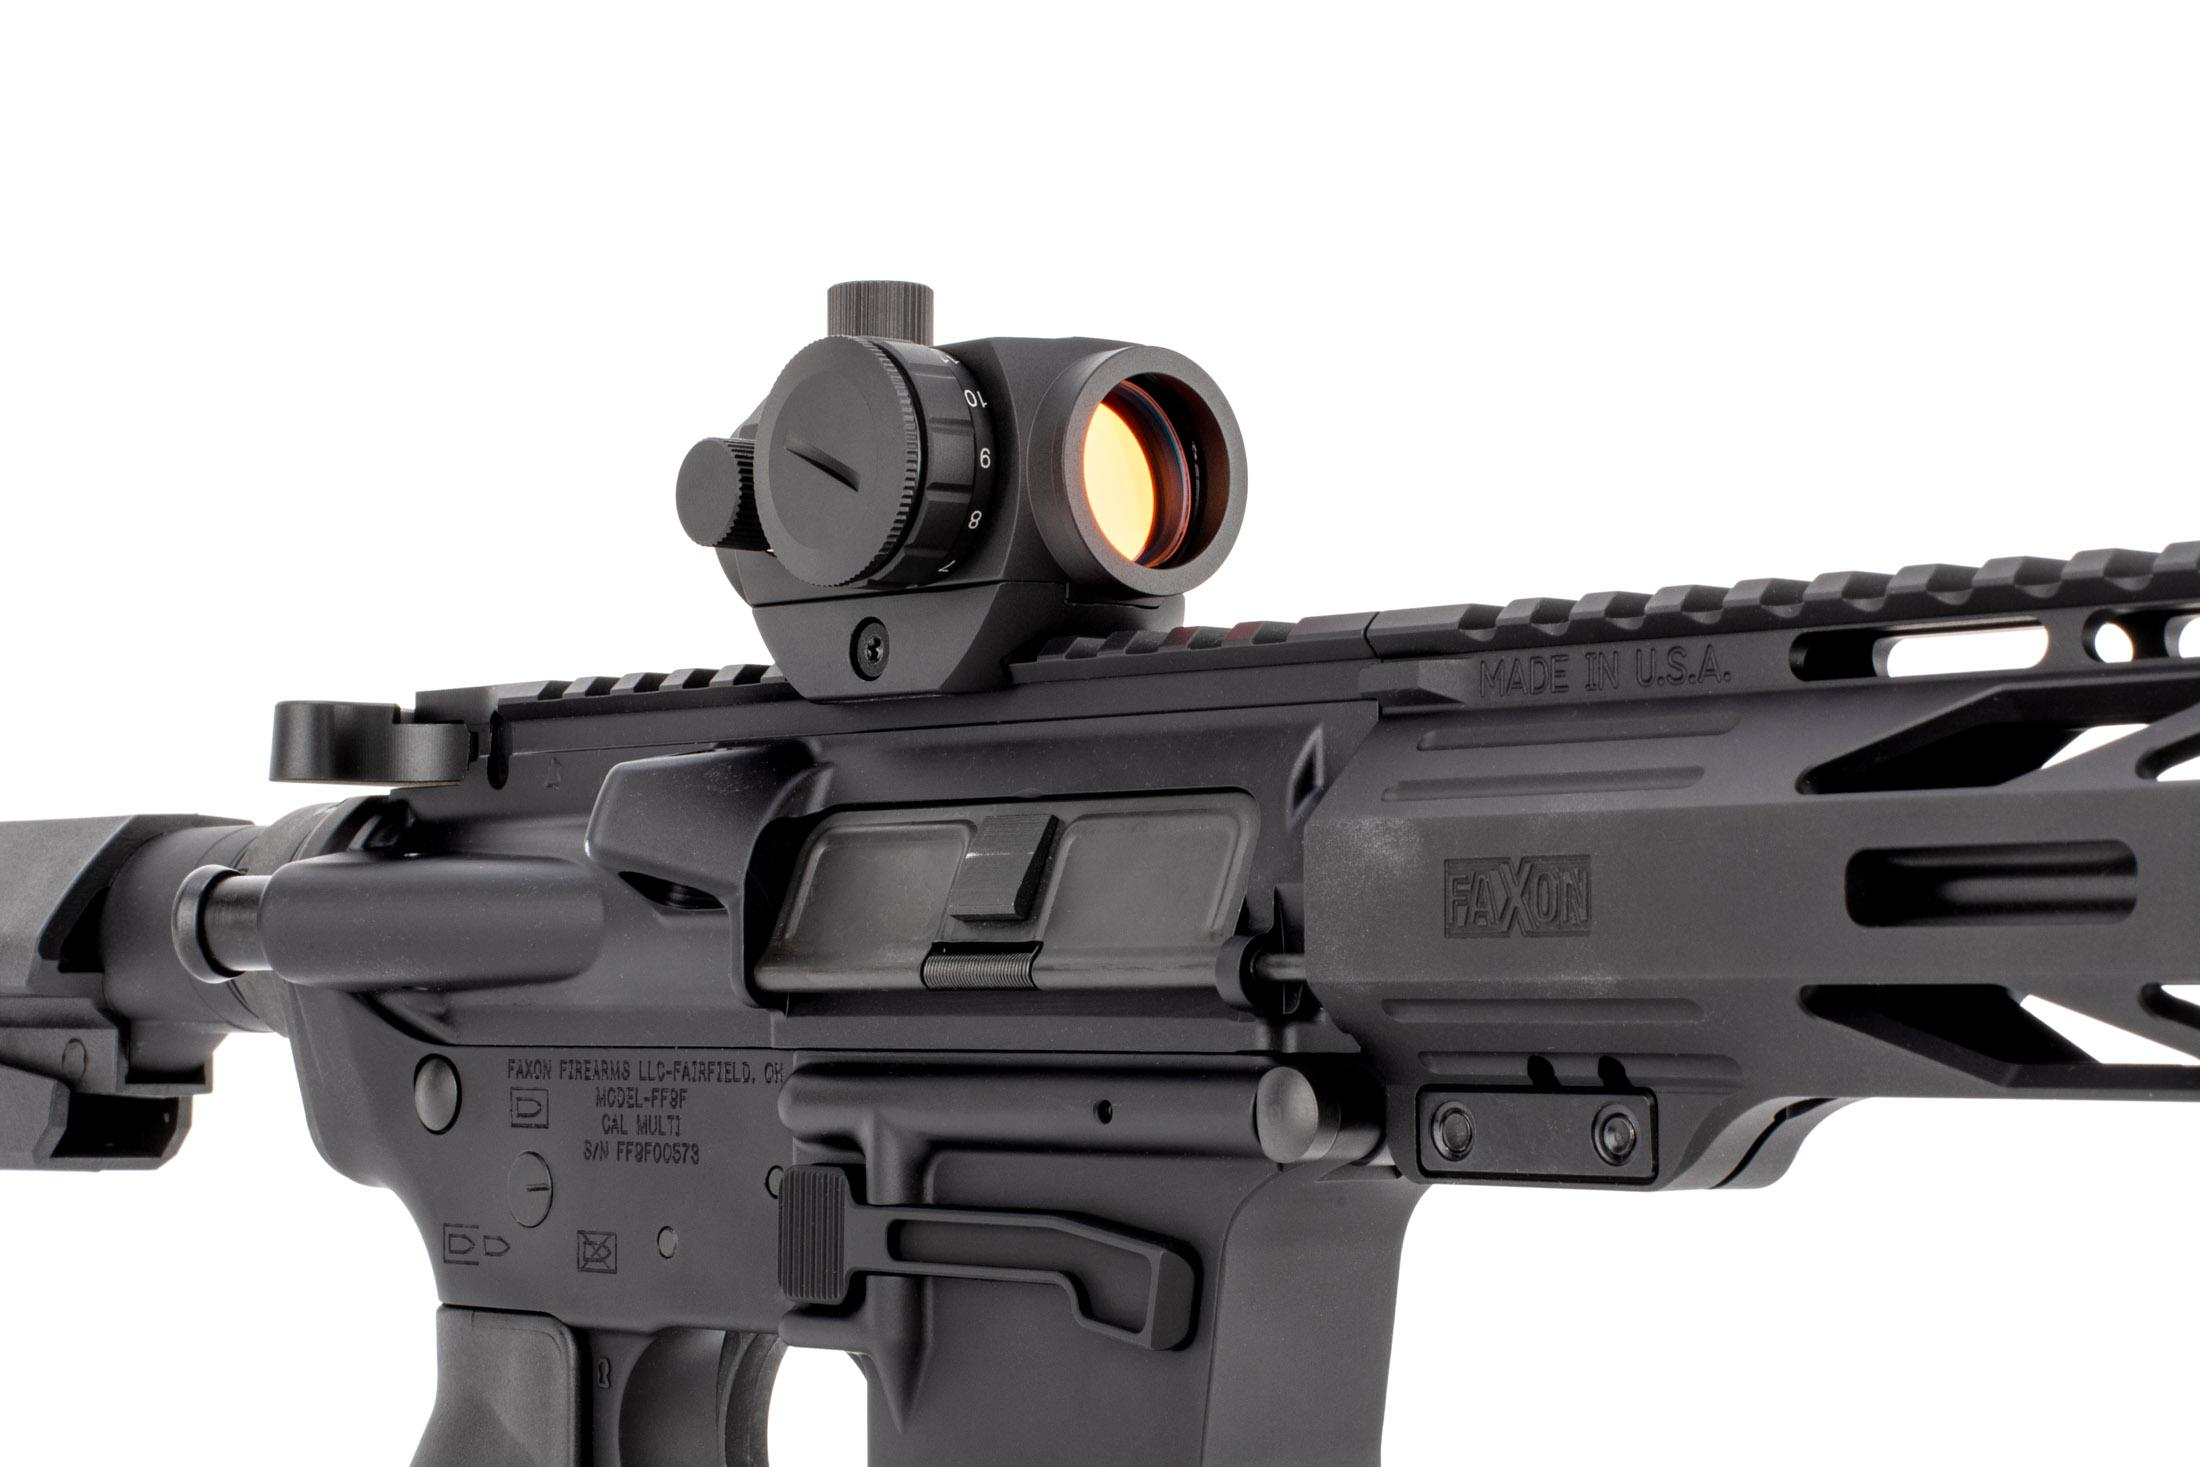 The primary arms red Dot features a removeable base and 1,000 hour battery life